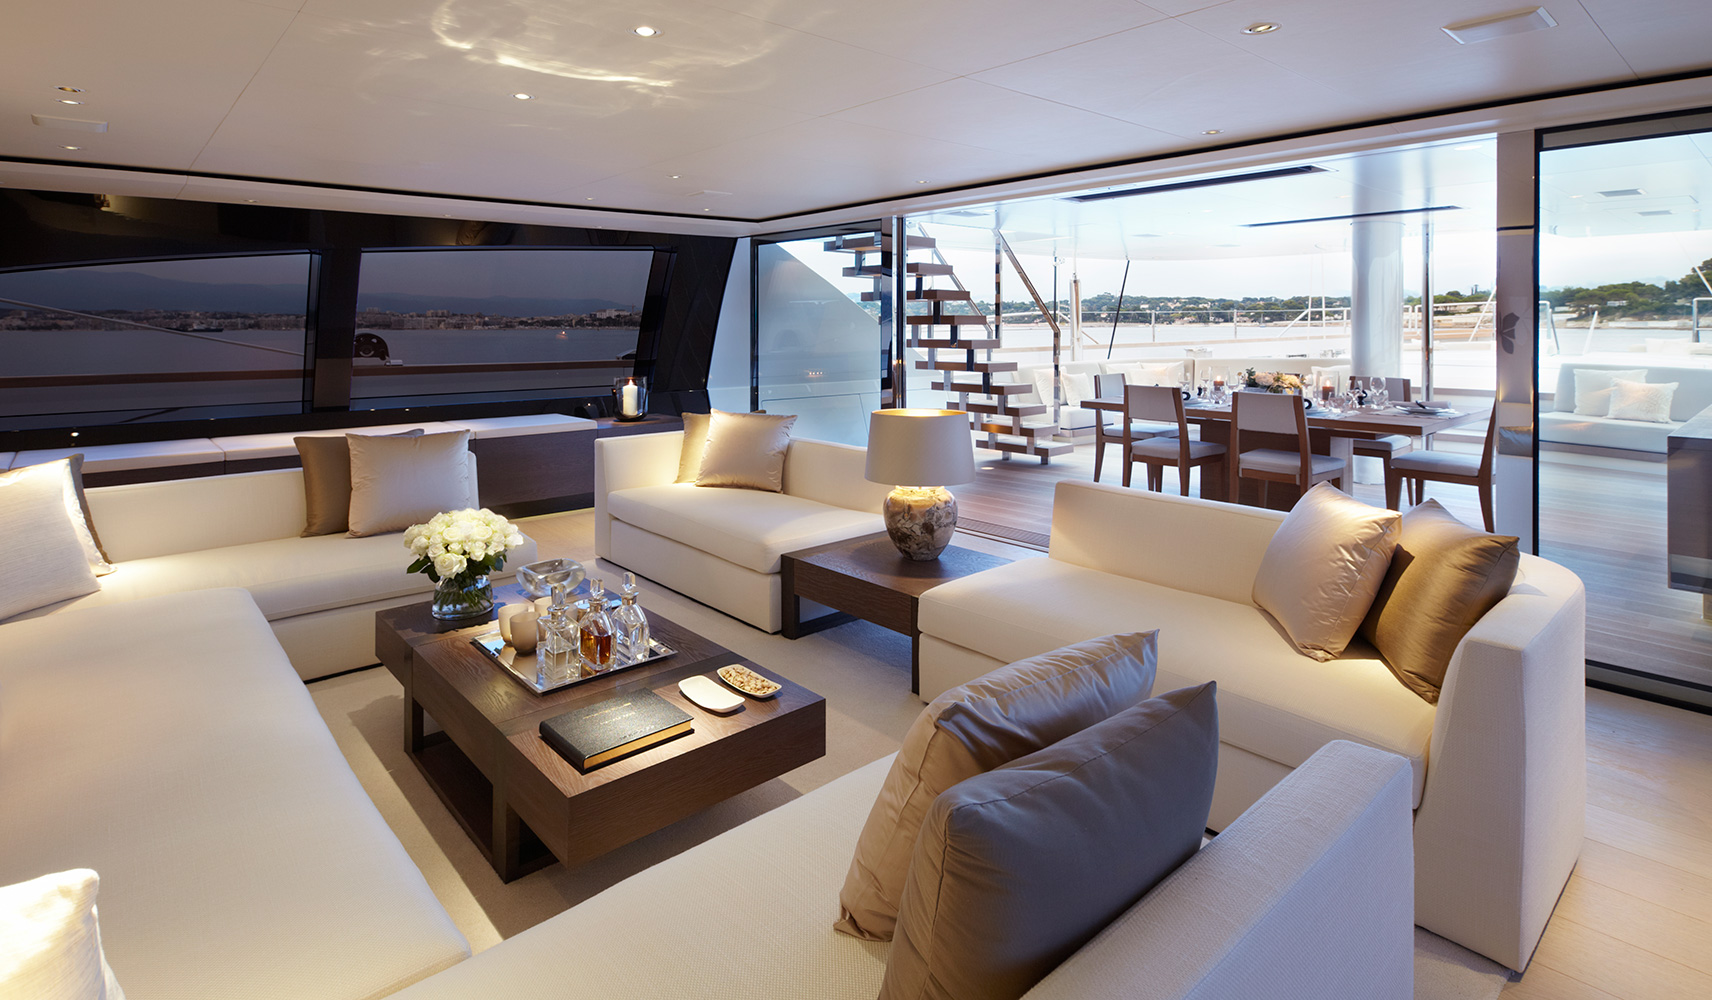 The 57 49m 188 7 high performance sailing yacht is an exceptional luxury ketch built by royal